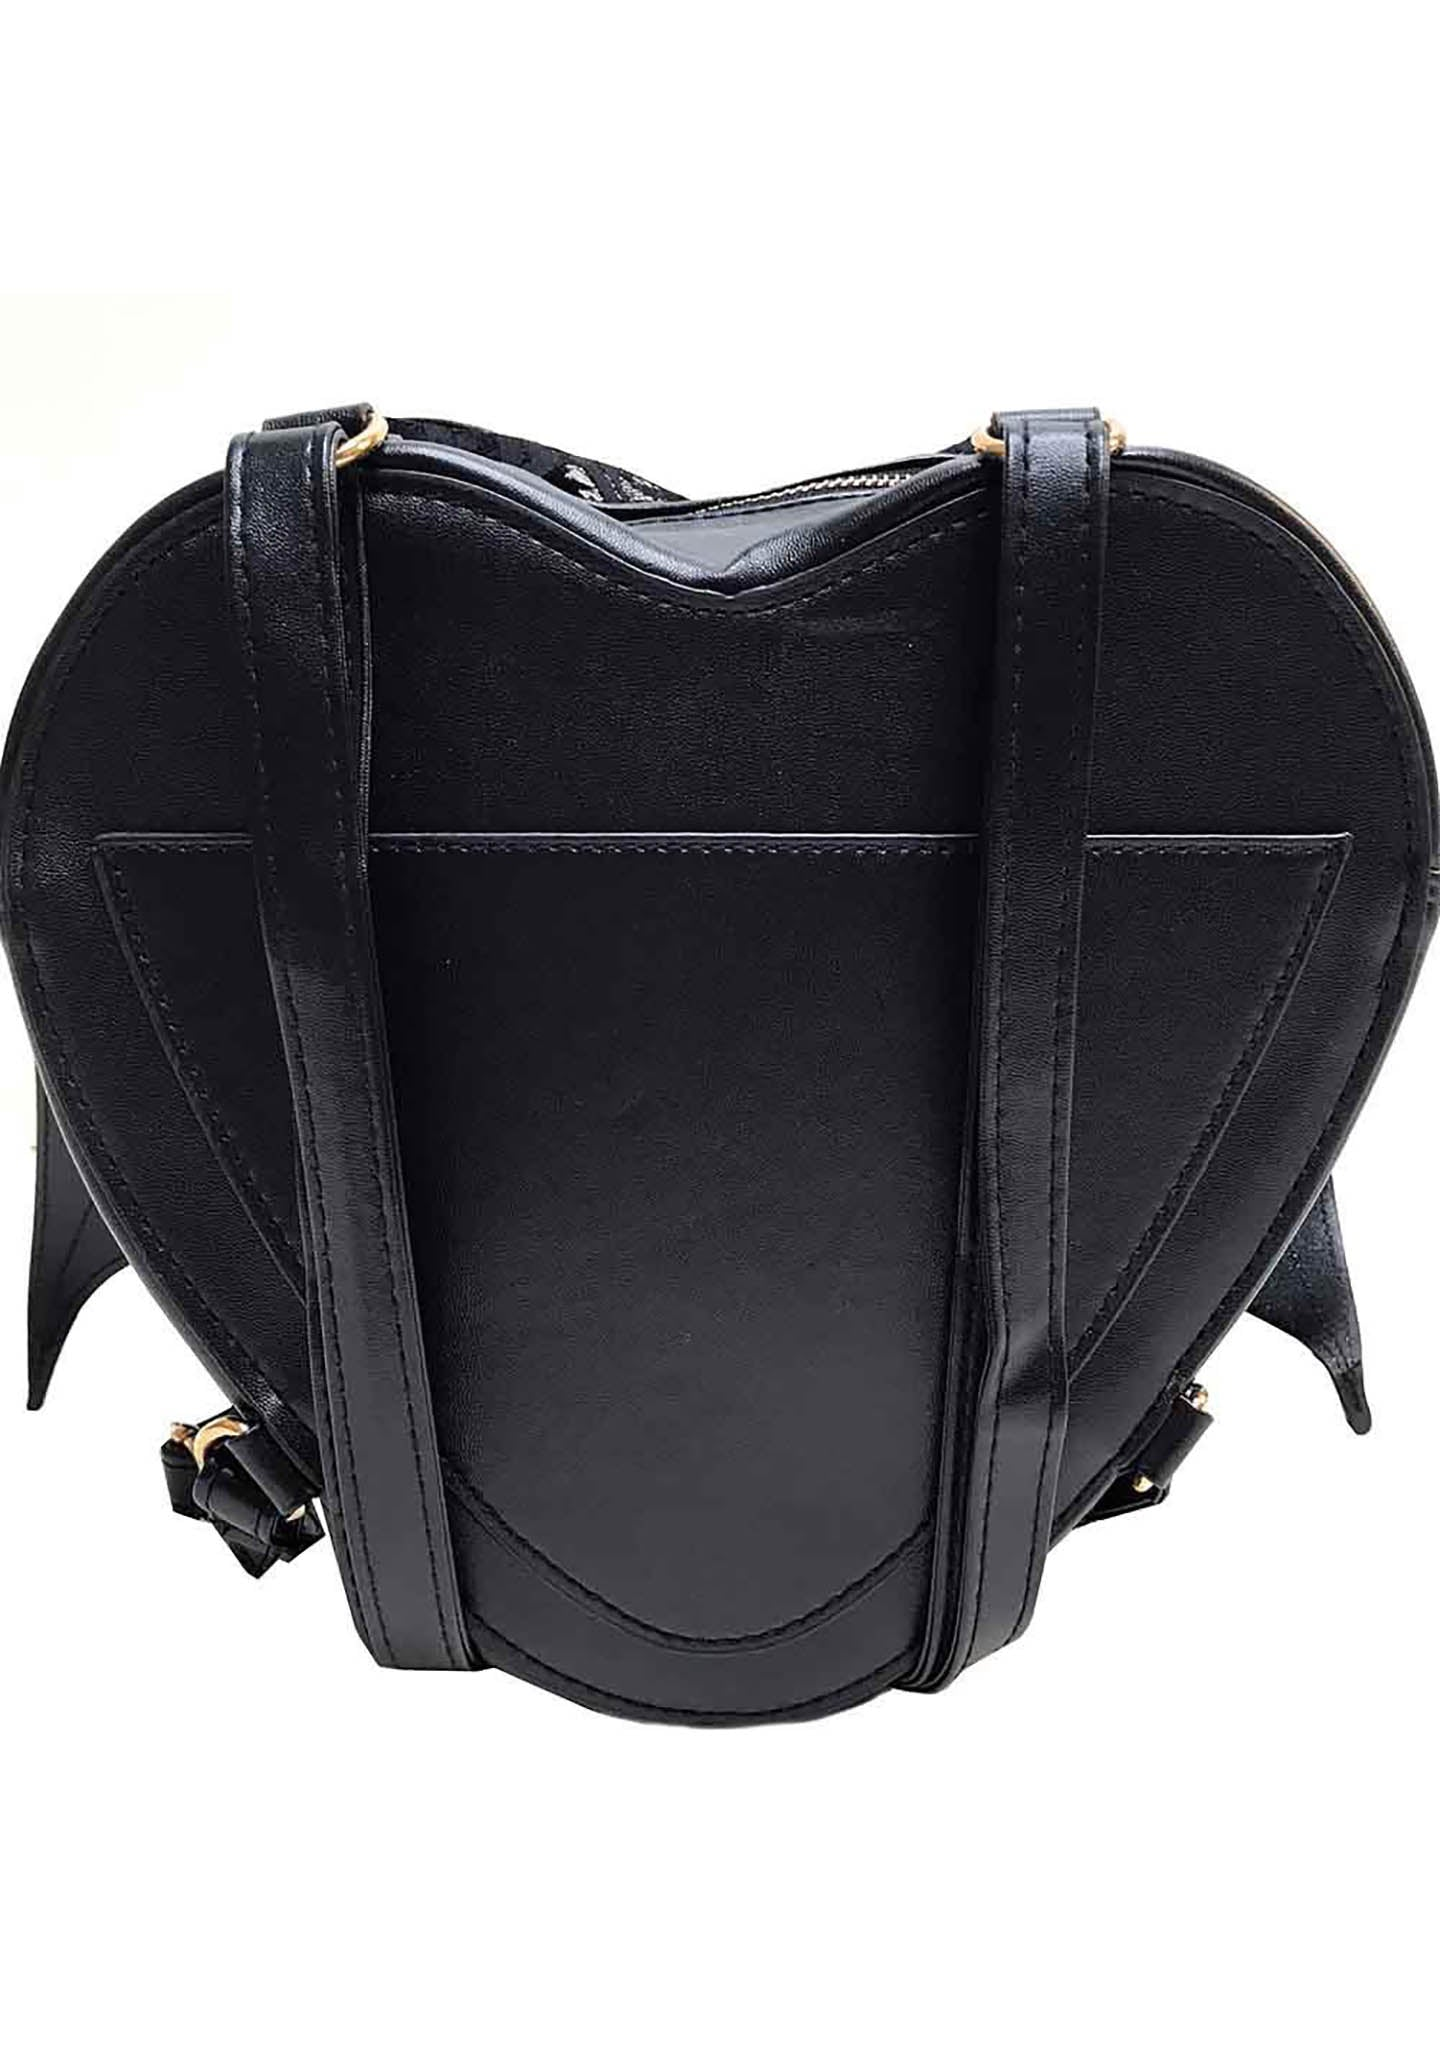 7 LUXE Off The Bat Backpack